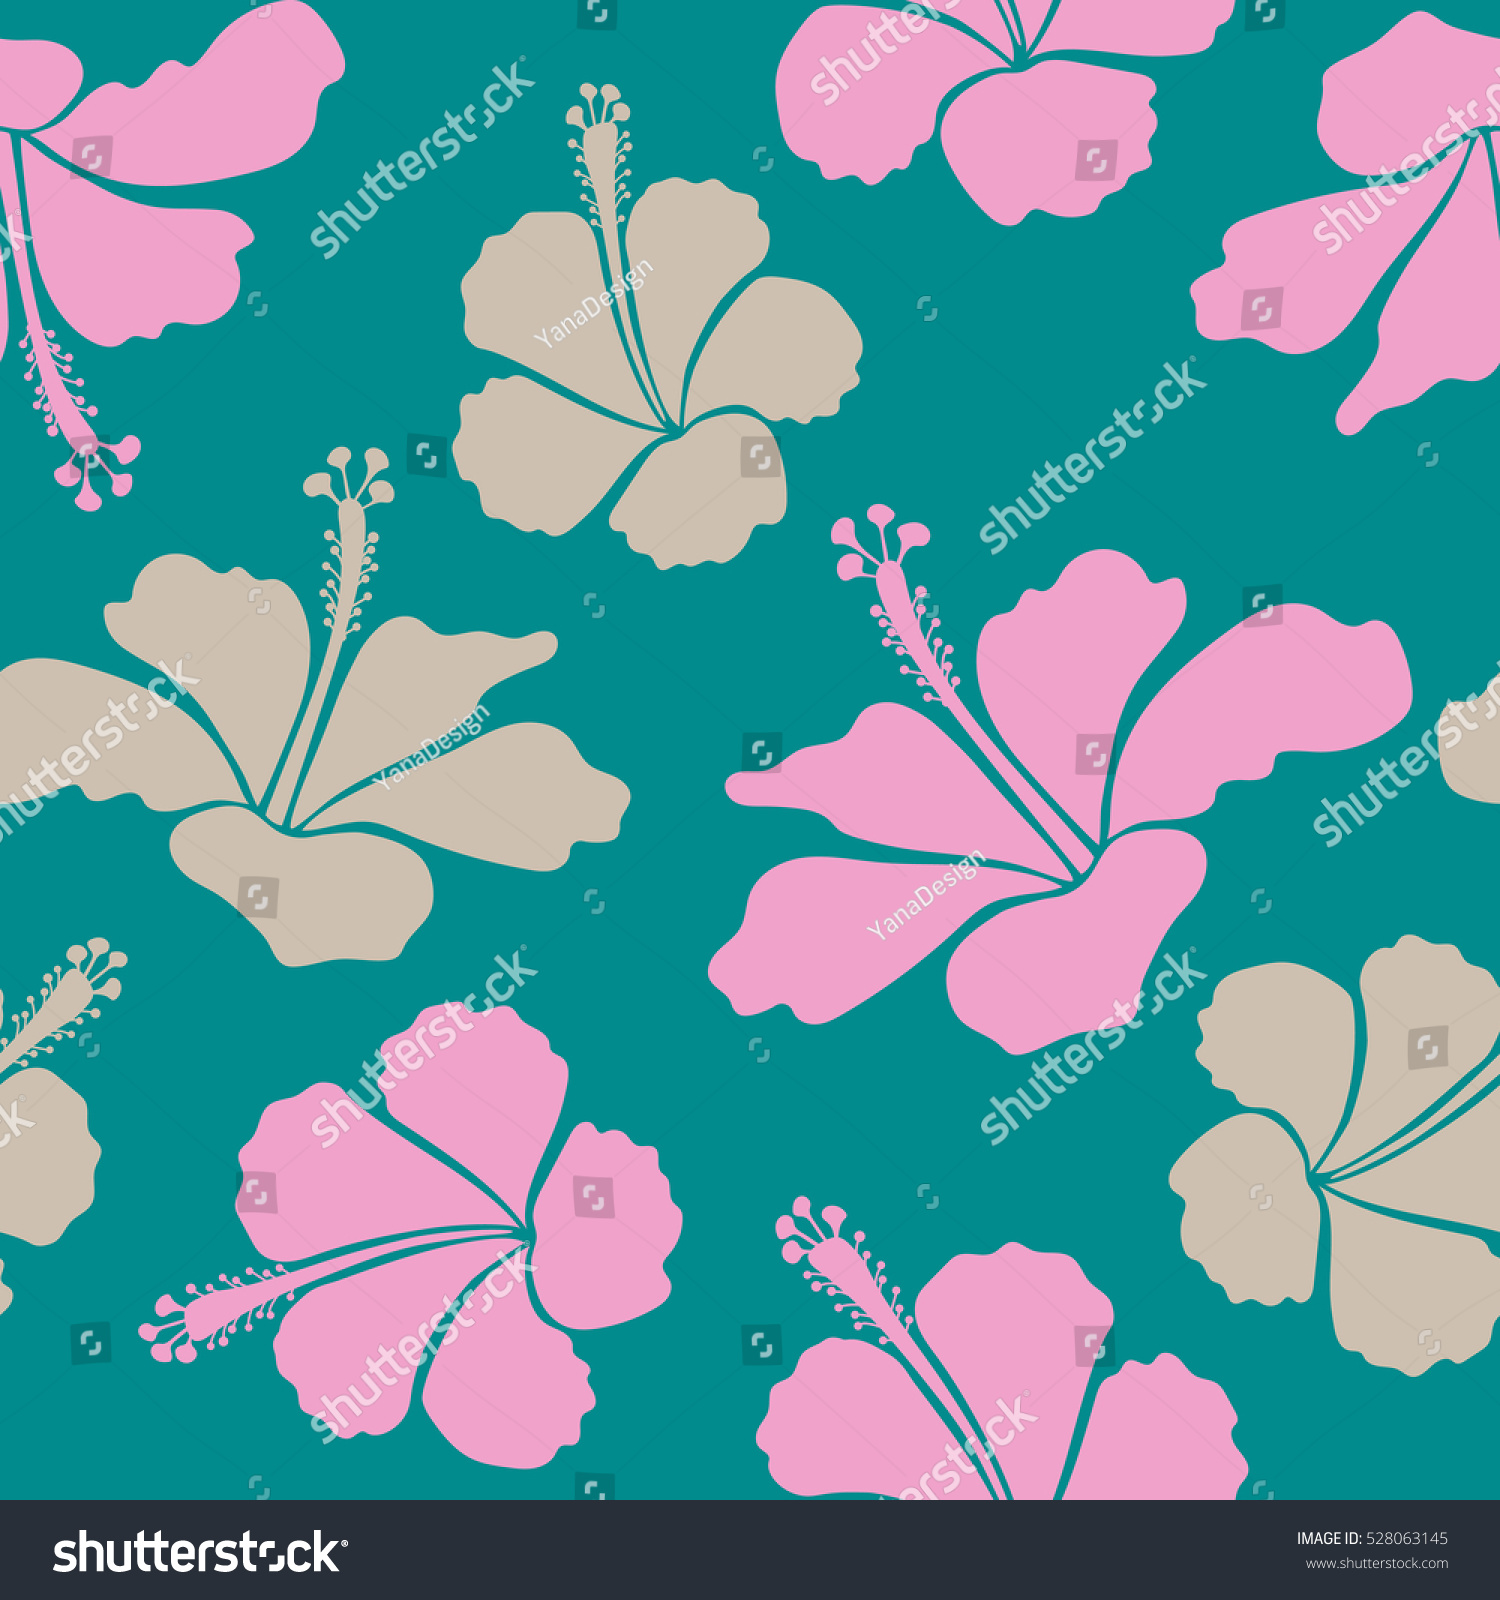 Cute pattern neutral blue pink hibiscus stock illustration 528063145 cute pattern in neutral blue and pink hibiscus flowers the elegant the template for izmirmasajfo